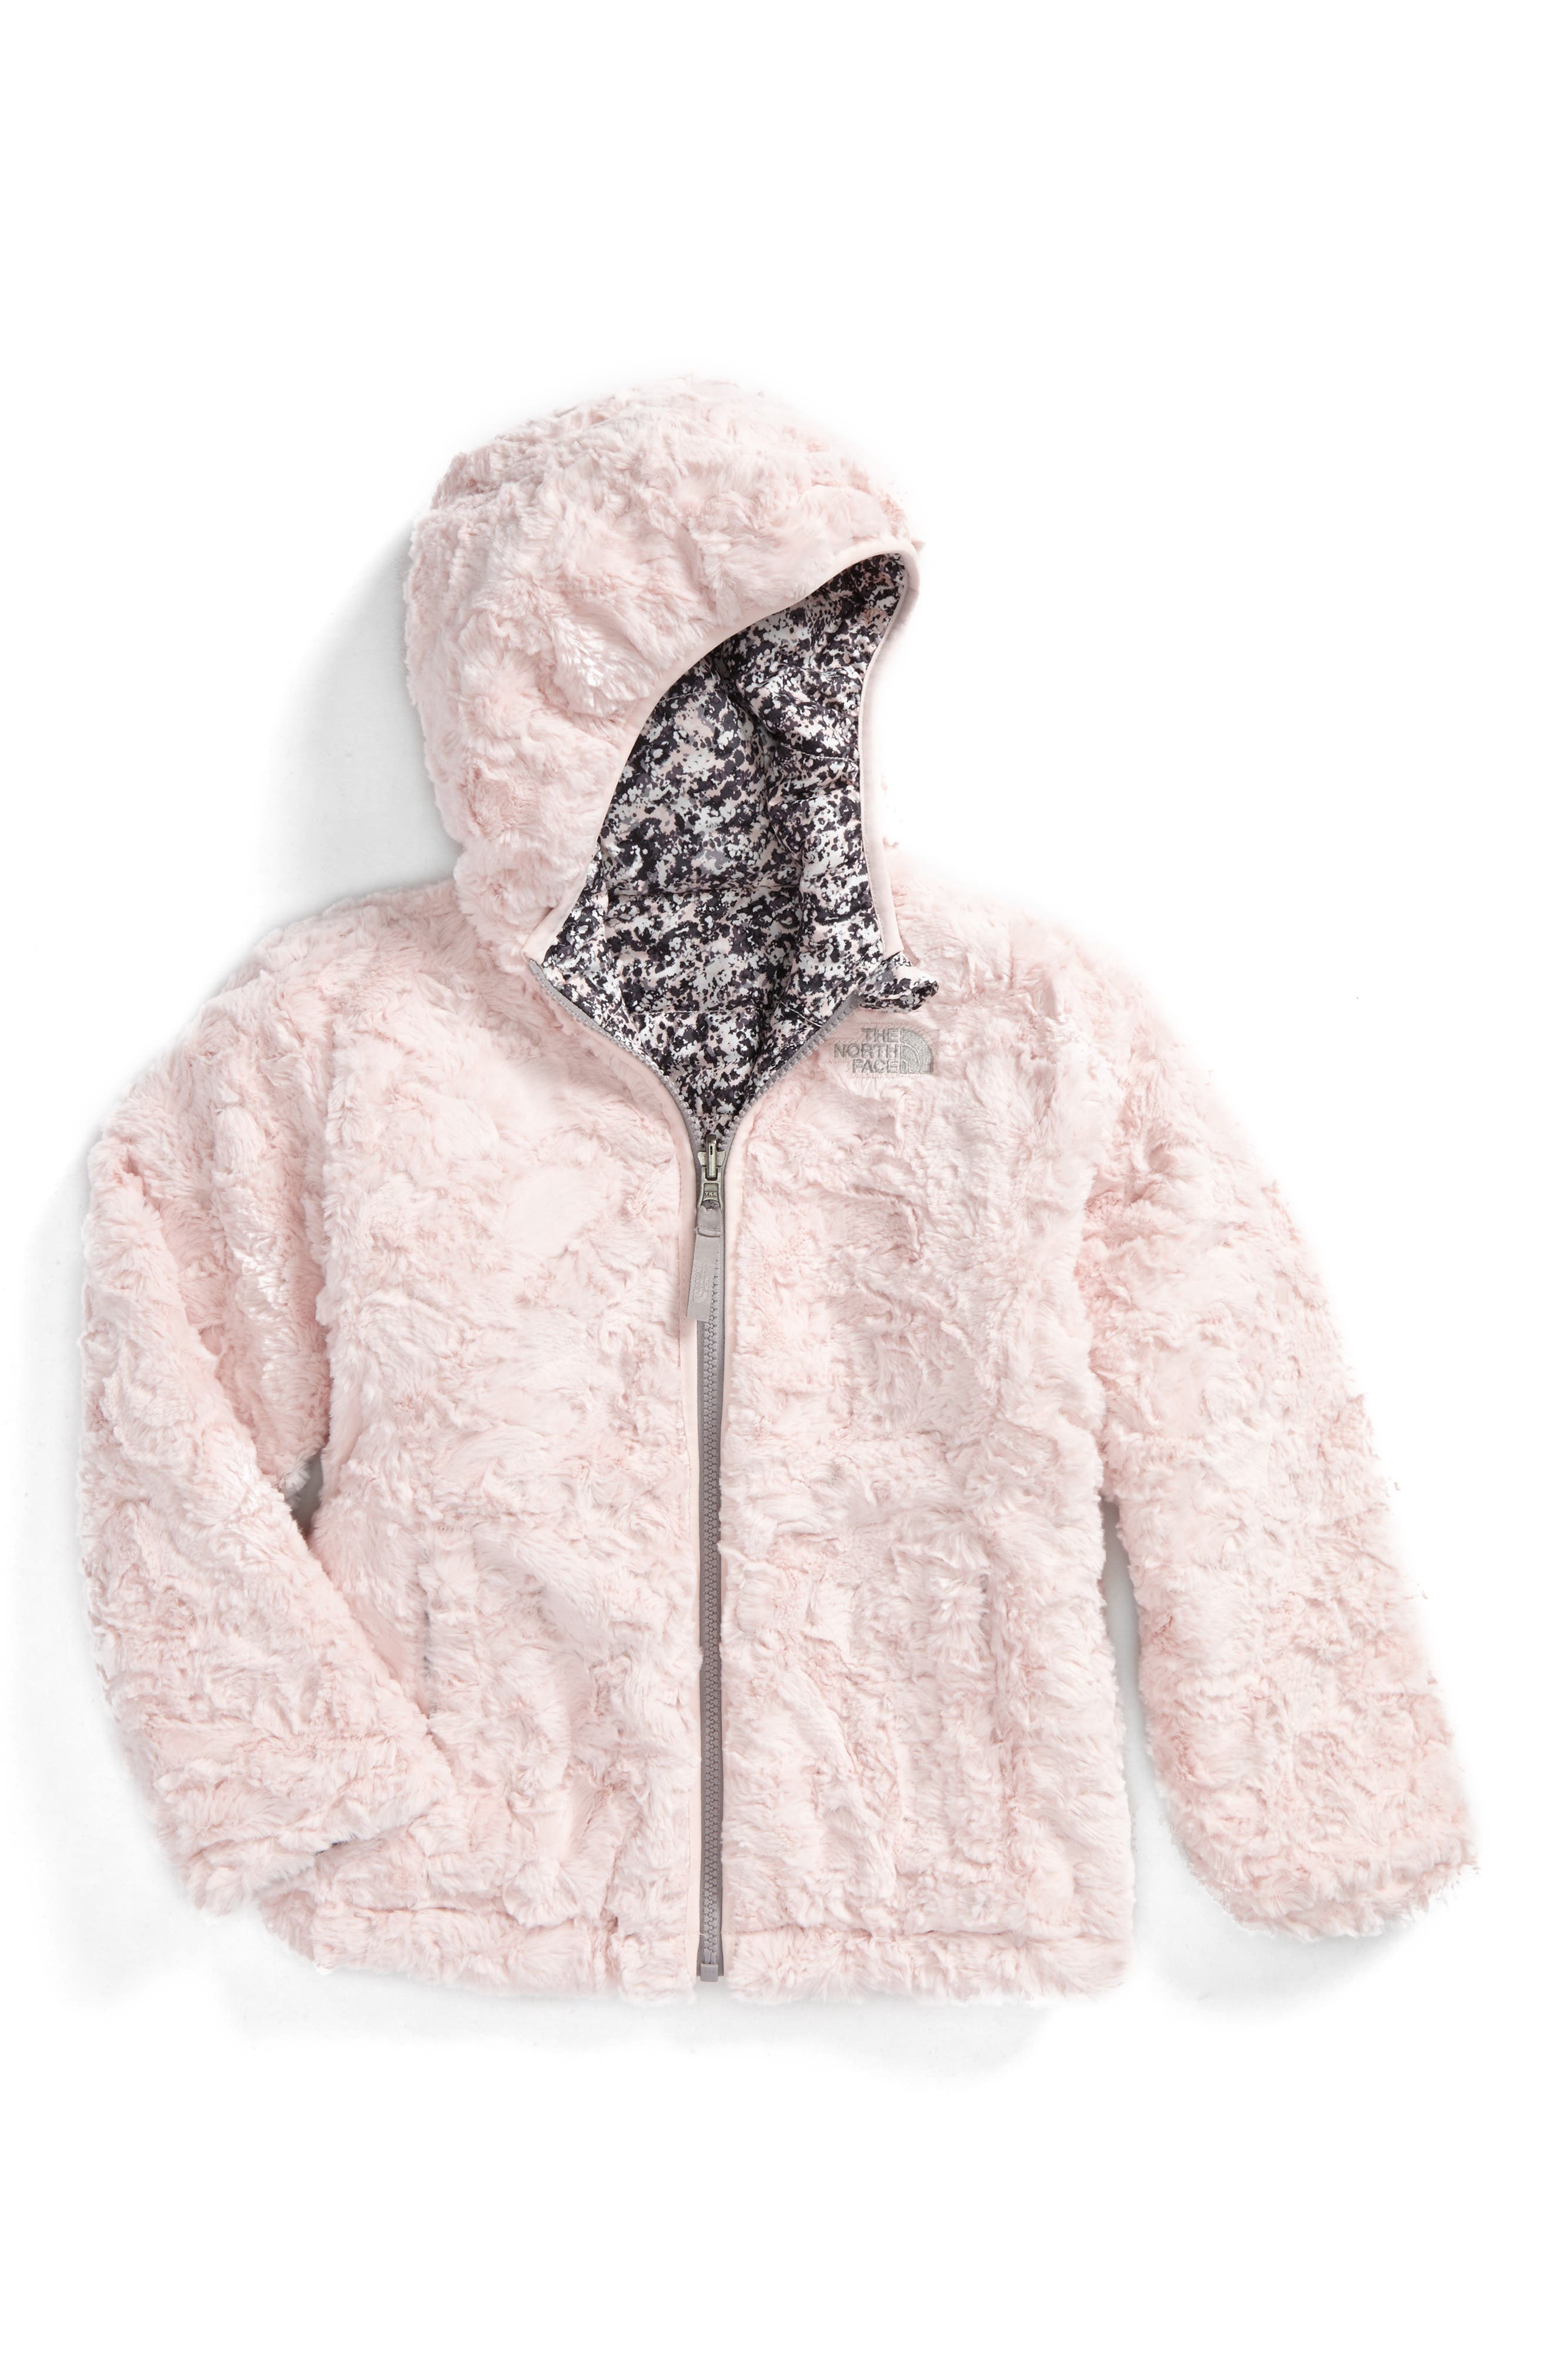 Mossbud Swirl Reversible Water Repellent Jacket,                             Alternate thumbnail 2, color,                             Purdy Pink Sponge Print